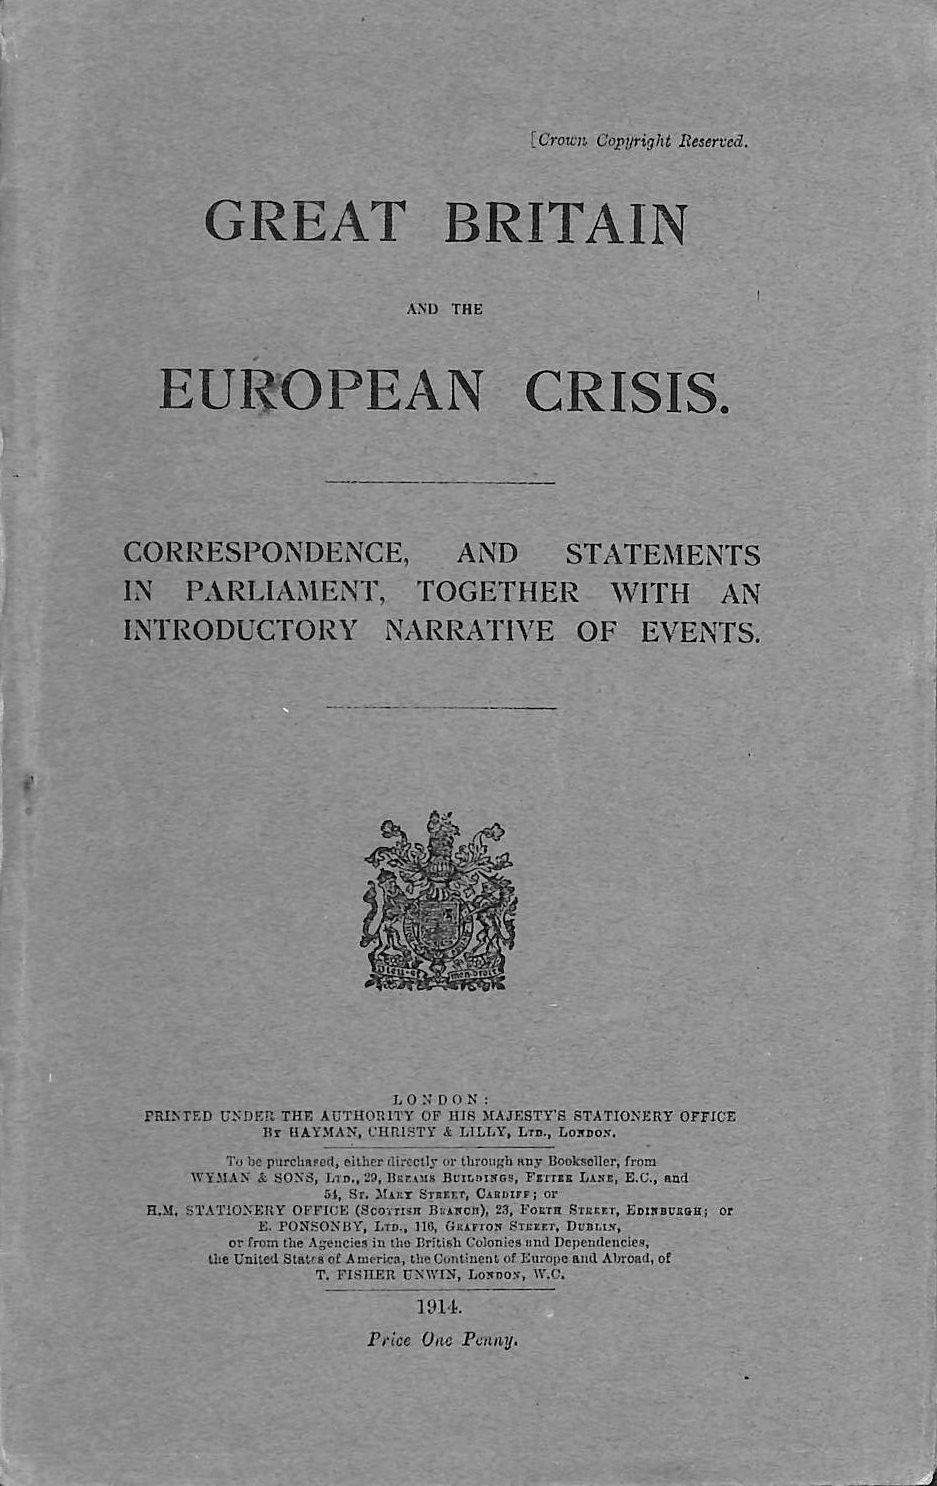 Great Britain and the European Crisis. Correspondence, and Statements in Parliament, Together with an Introductory Narrative of Events., anon